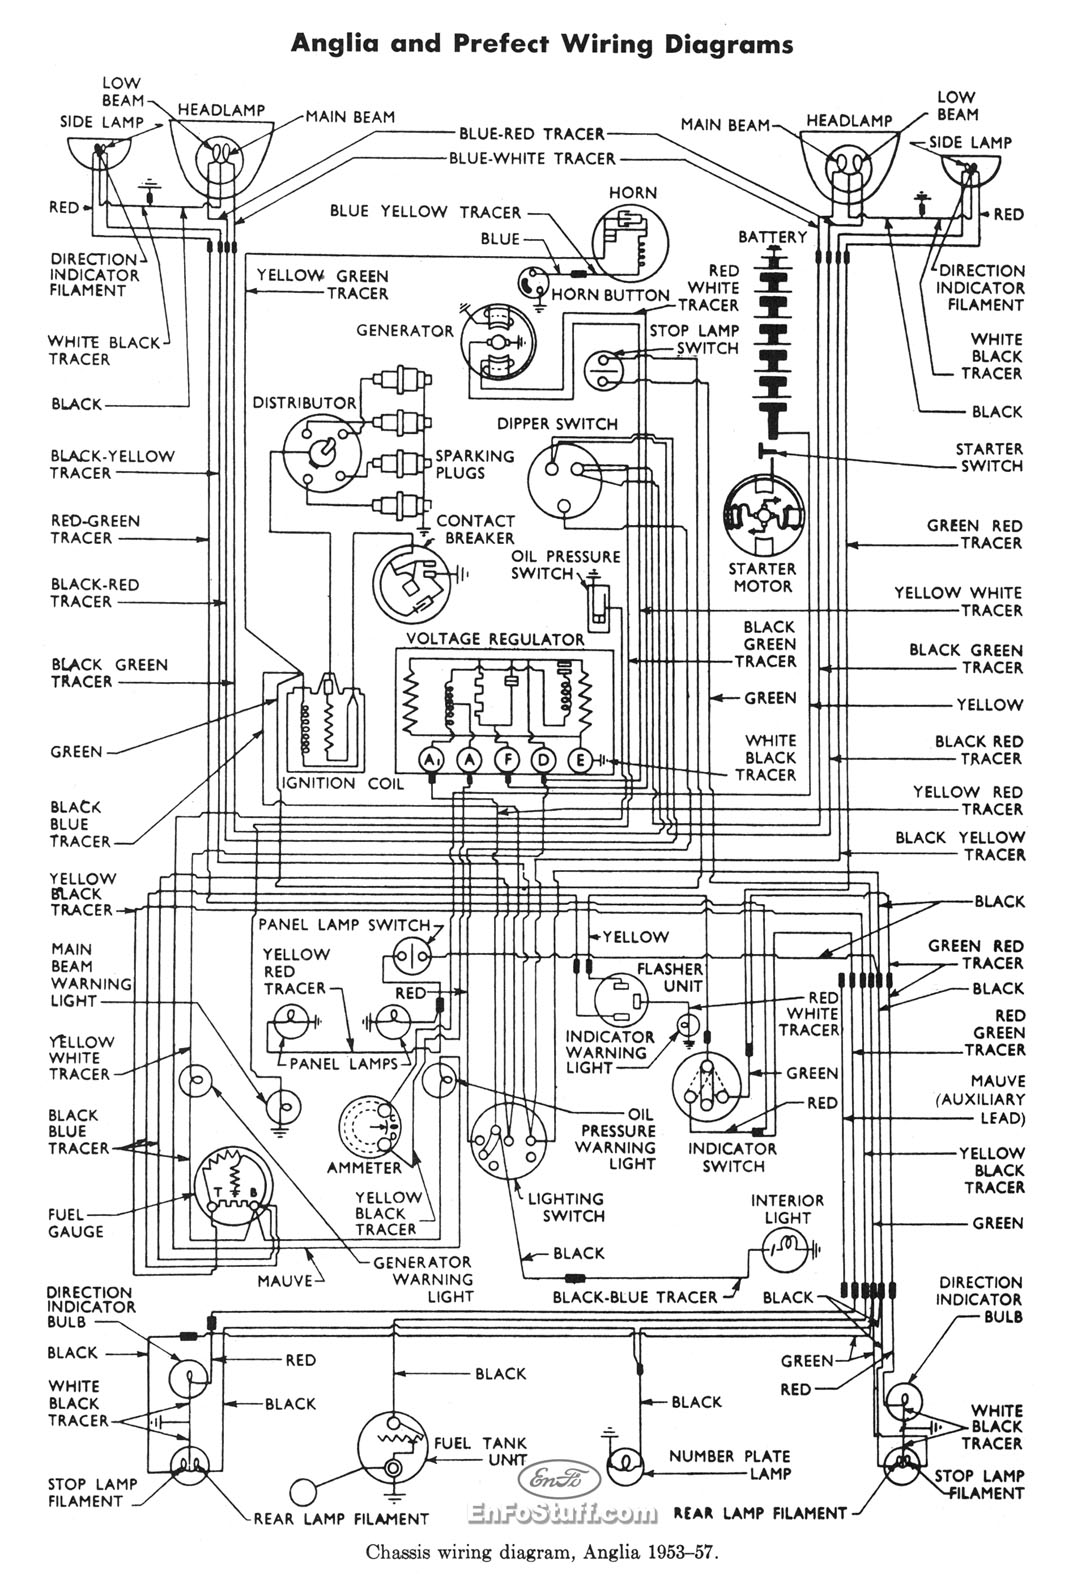 1953 Ford Wiring Diagram Pdf Diagrams Buick For Anglia 57 Rh Enfostuff Com Customline 4 Door